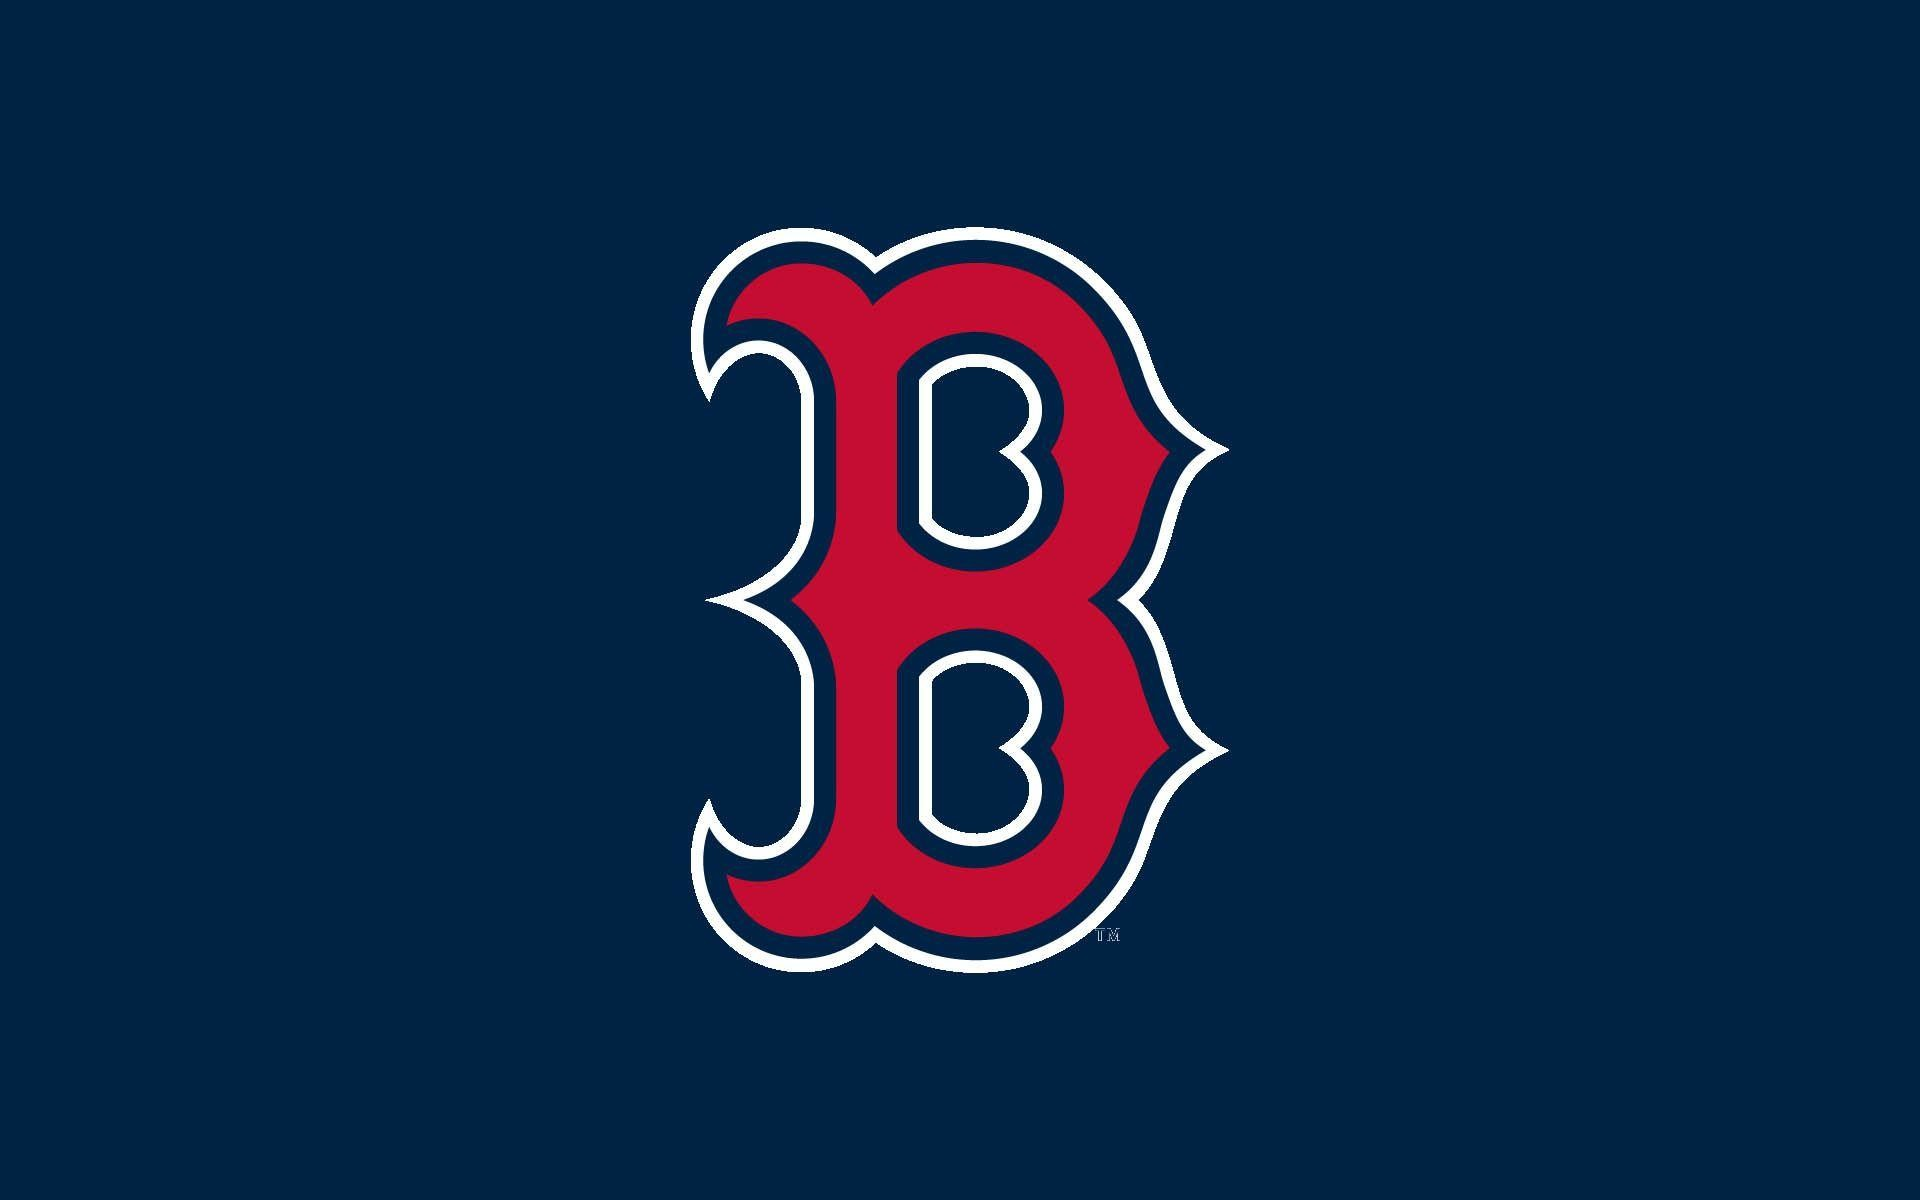 1920x1200 - Boston Red Sox Wallpaper Screensavers 44